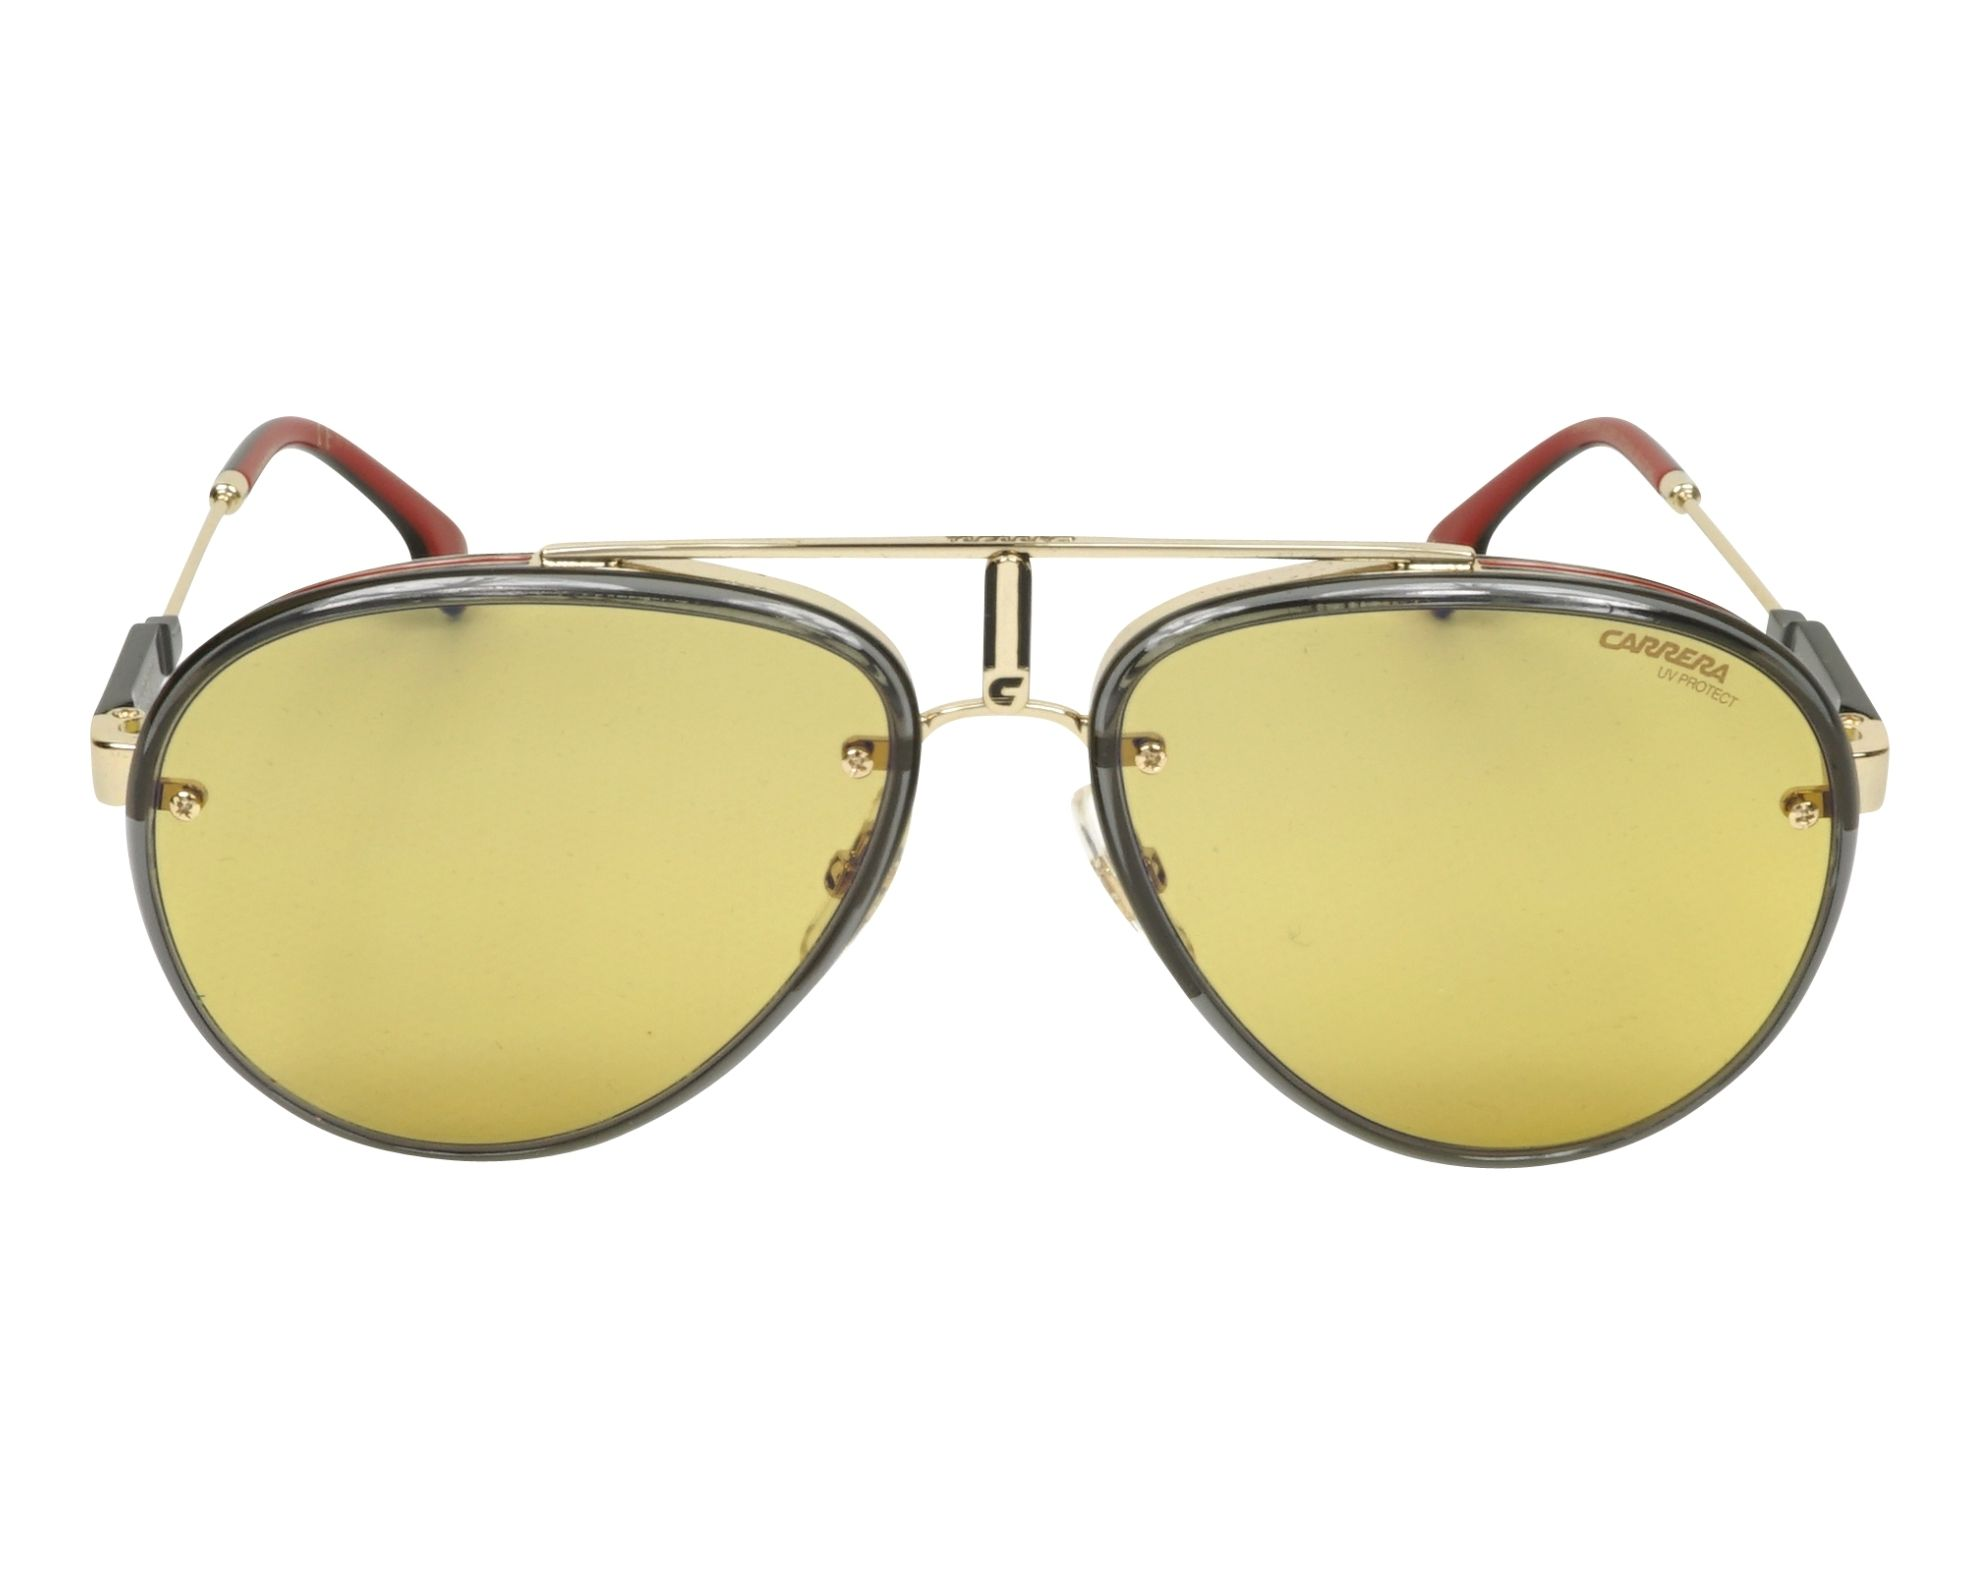 0664069c7c1 Sunglasses Carrera GLORY DYG HW 58-17 Gold Grey front view